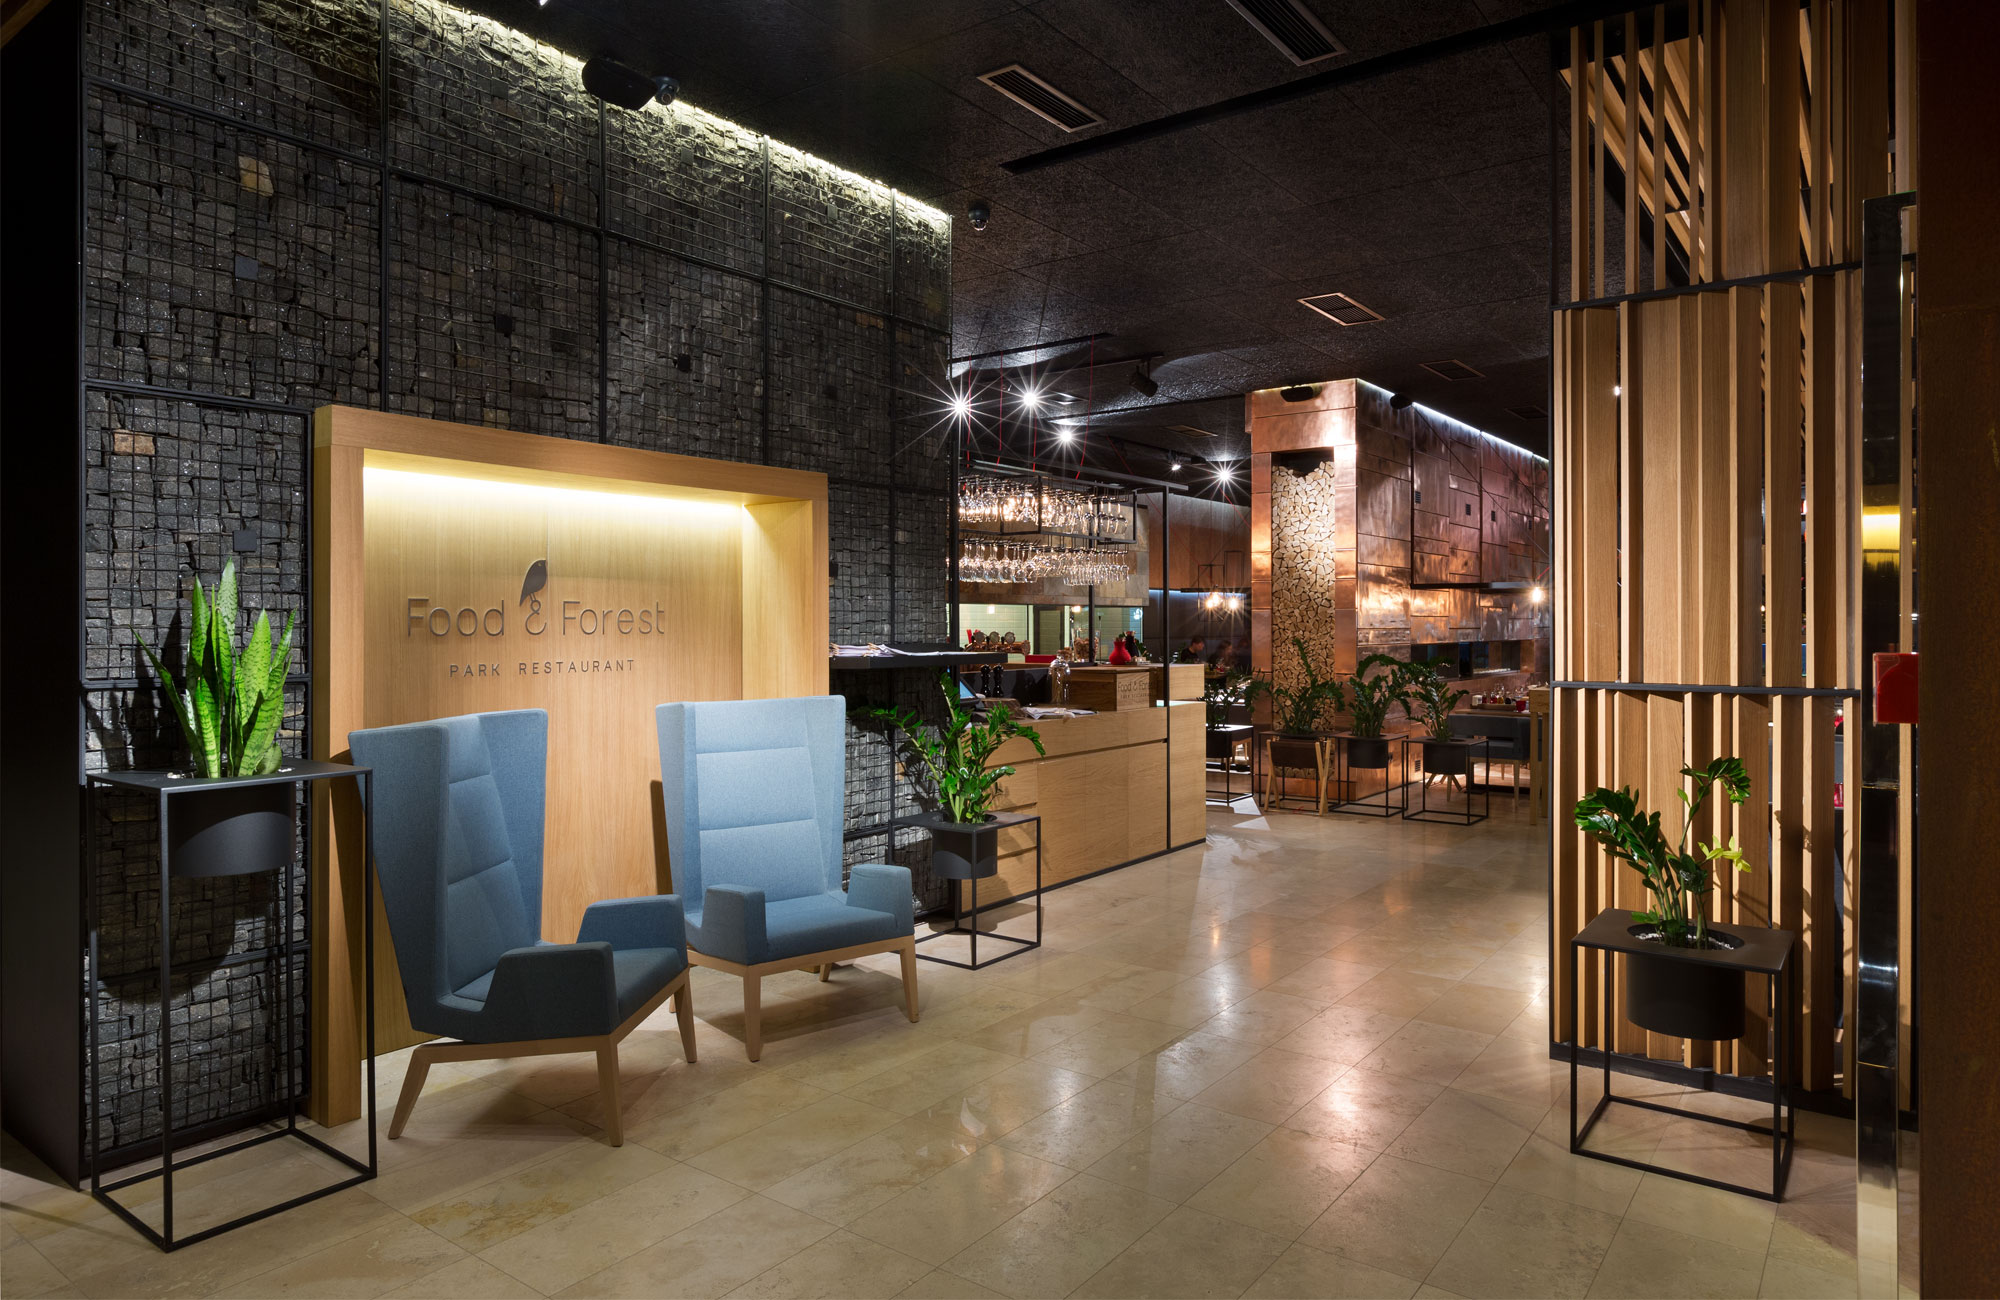 Gambion Walls - Food Forest Restaurant by Yod Design